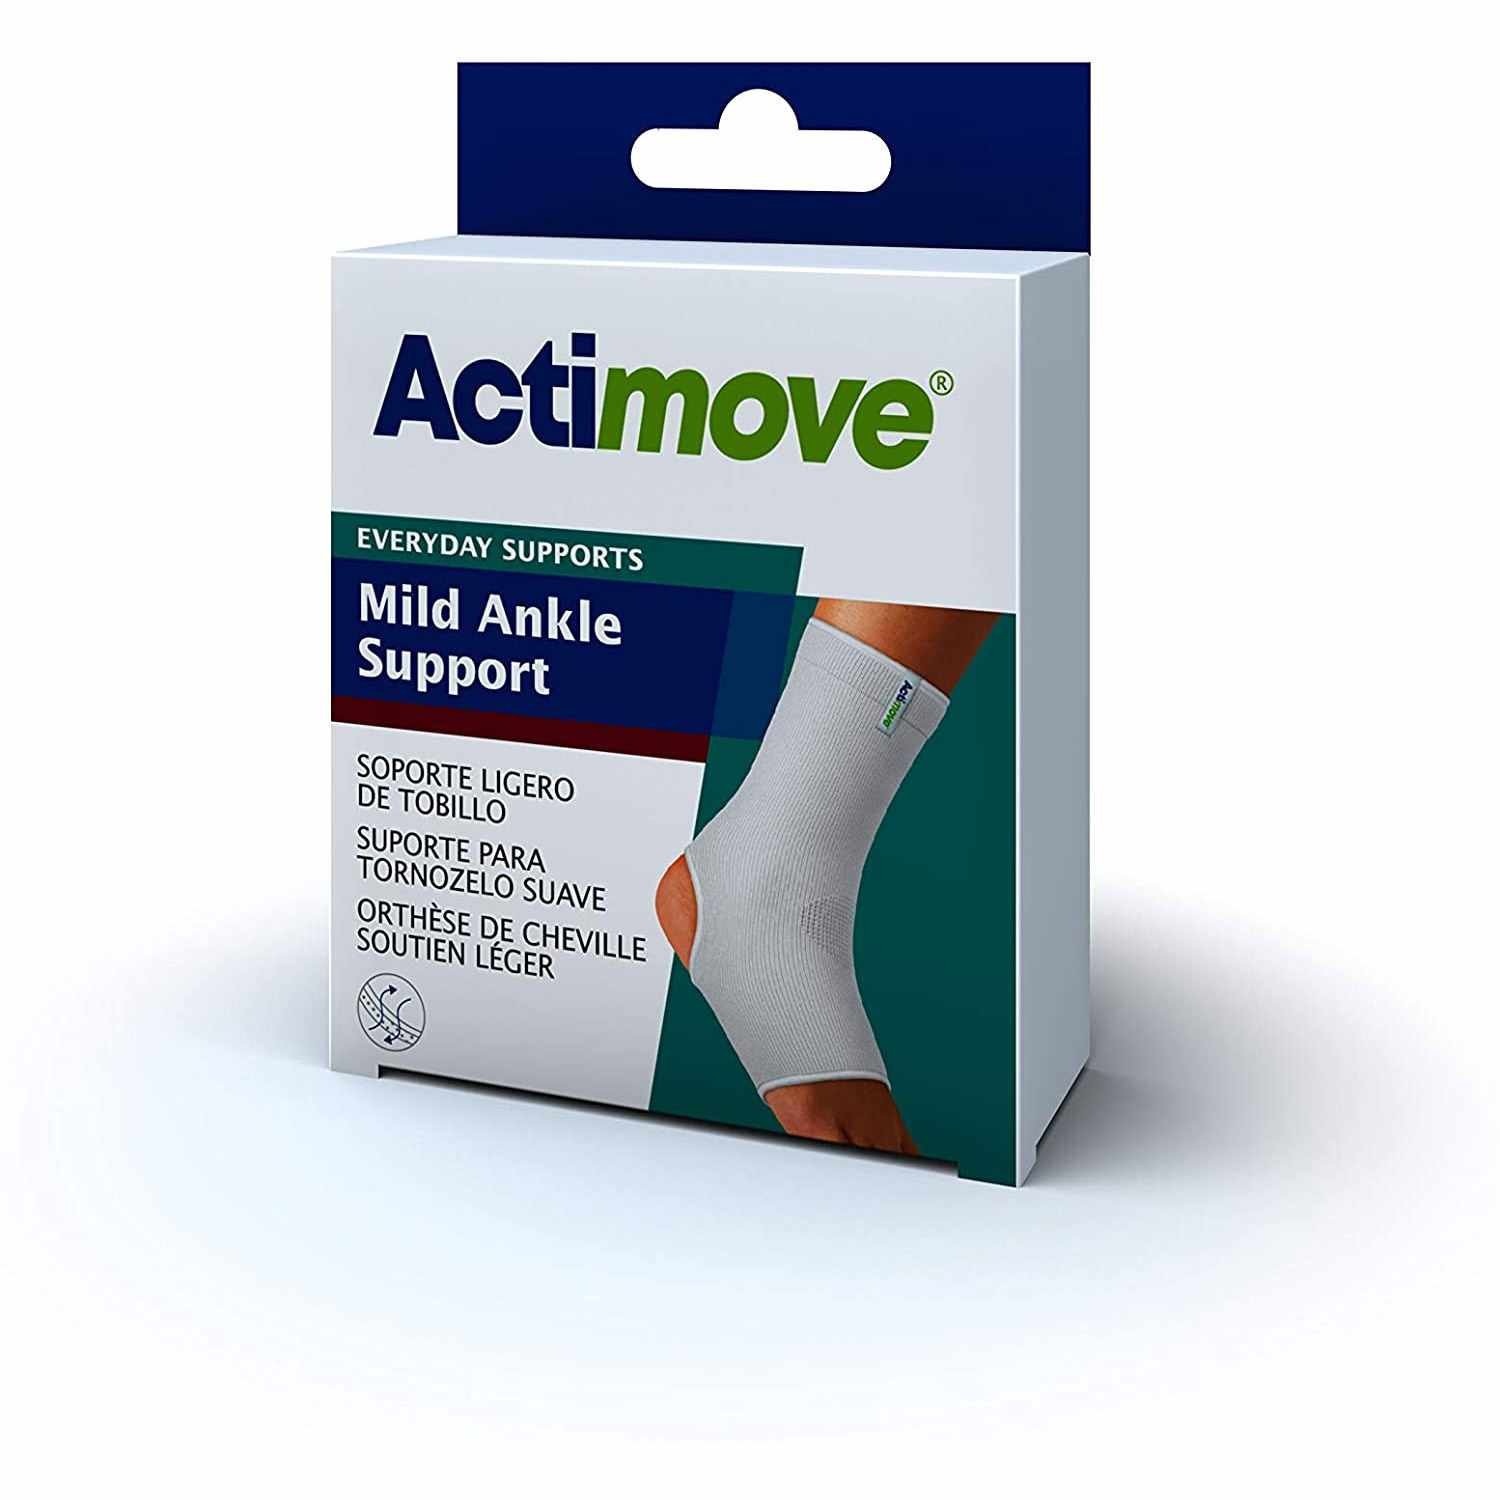 Actimove Mild Ankle Support, White